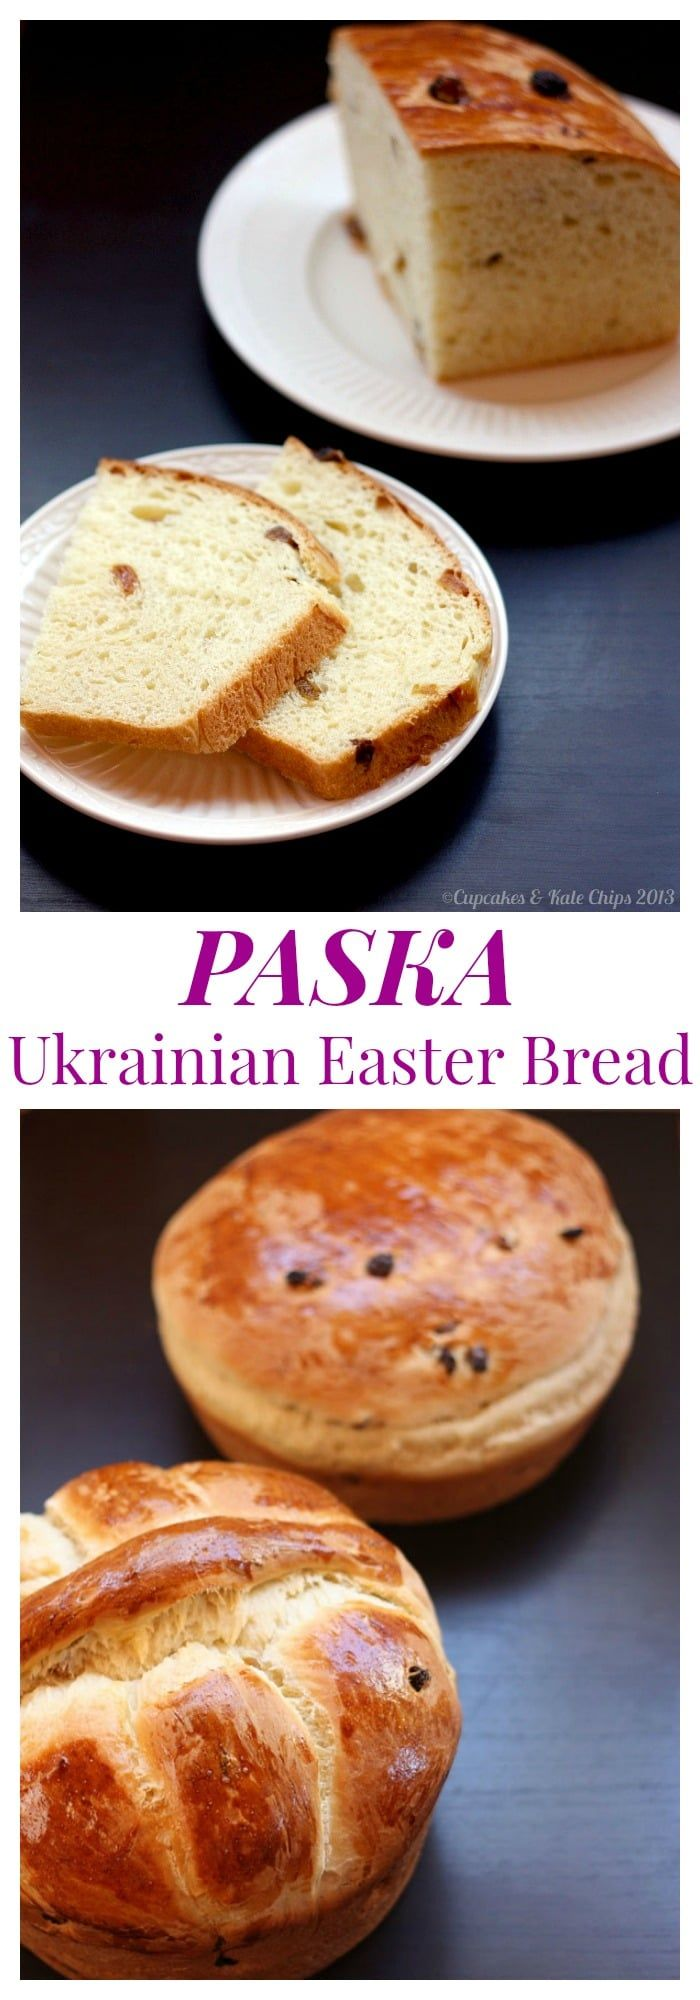 Paska - this Ukrainian Easter Bread recipe has been passed down for generations in my family | cupcakesandkalechips.com